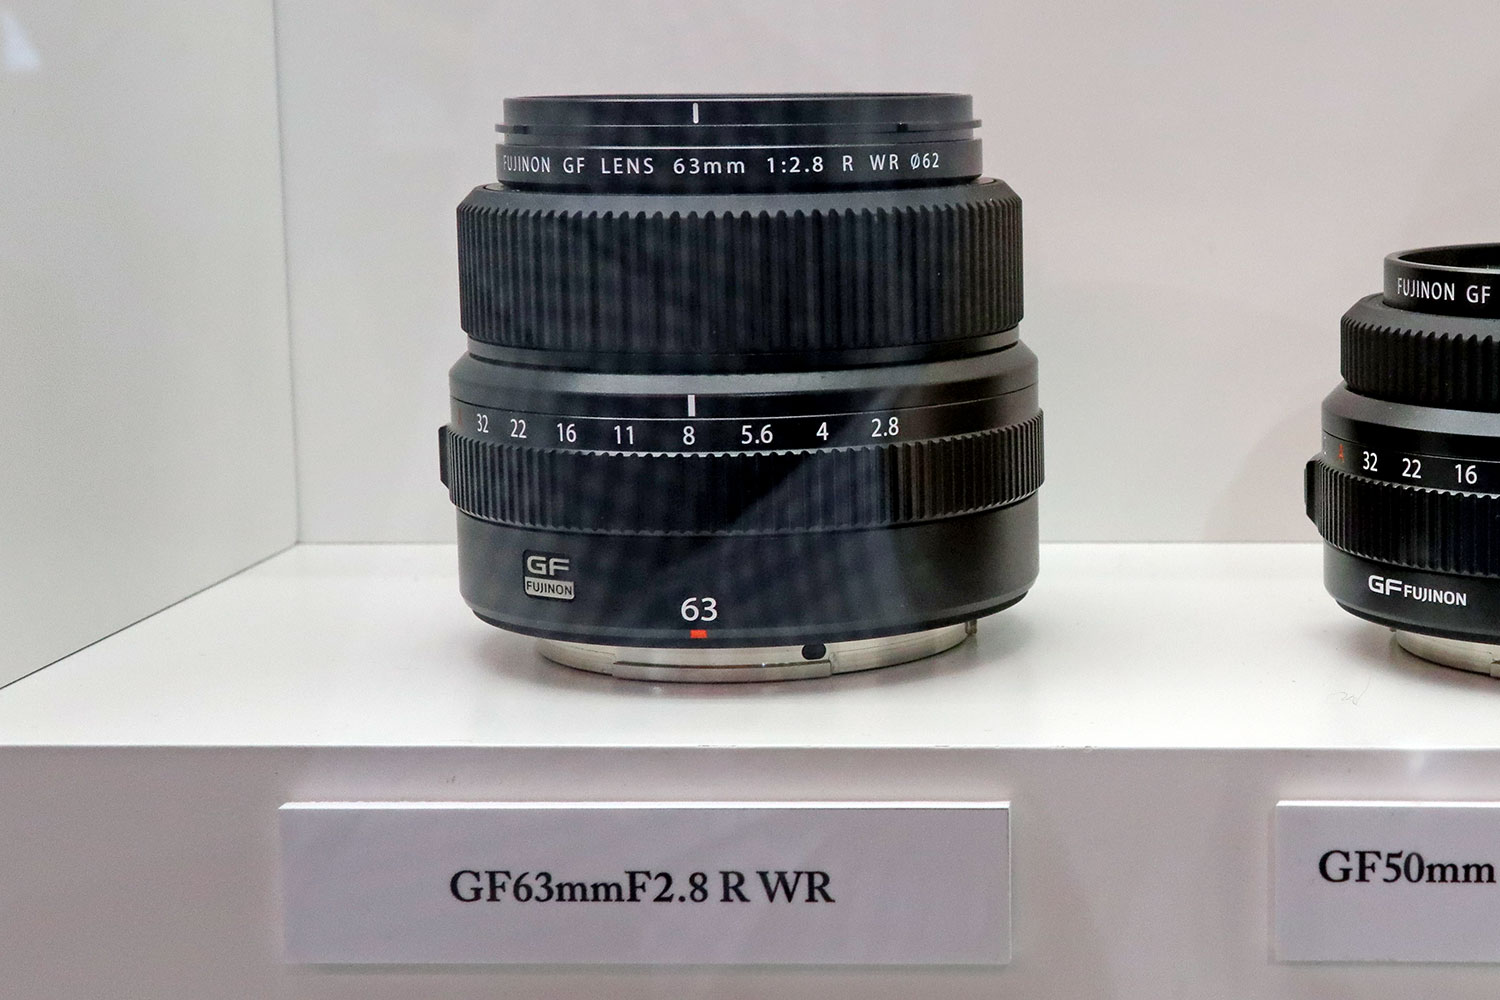 New roadmap for Fujifilm GF lenses unveilled